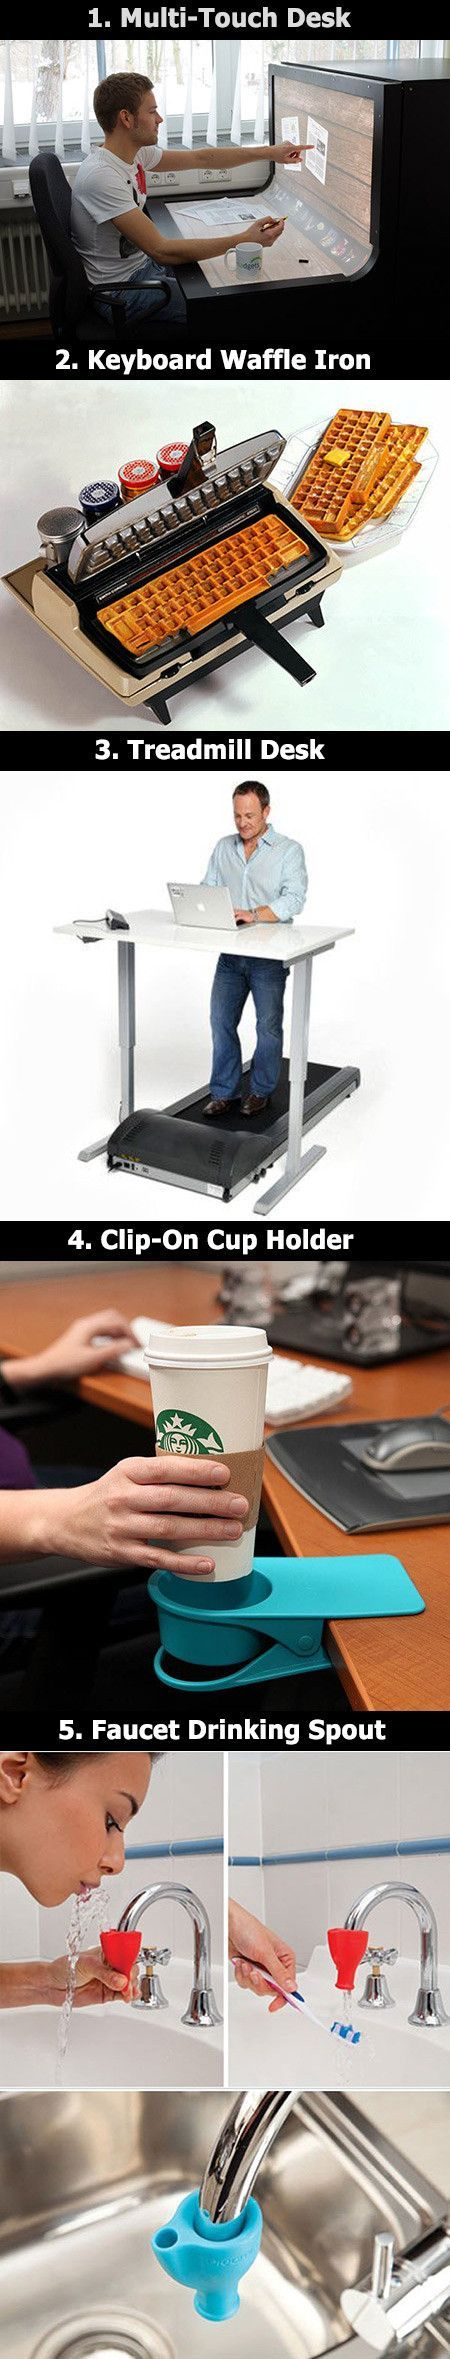 Here are some fun and creative home gadgets that I would love.